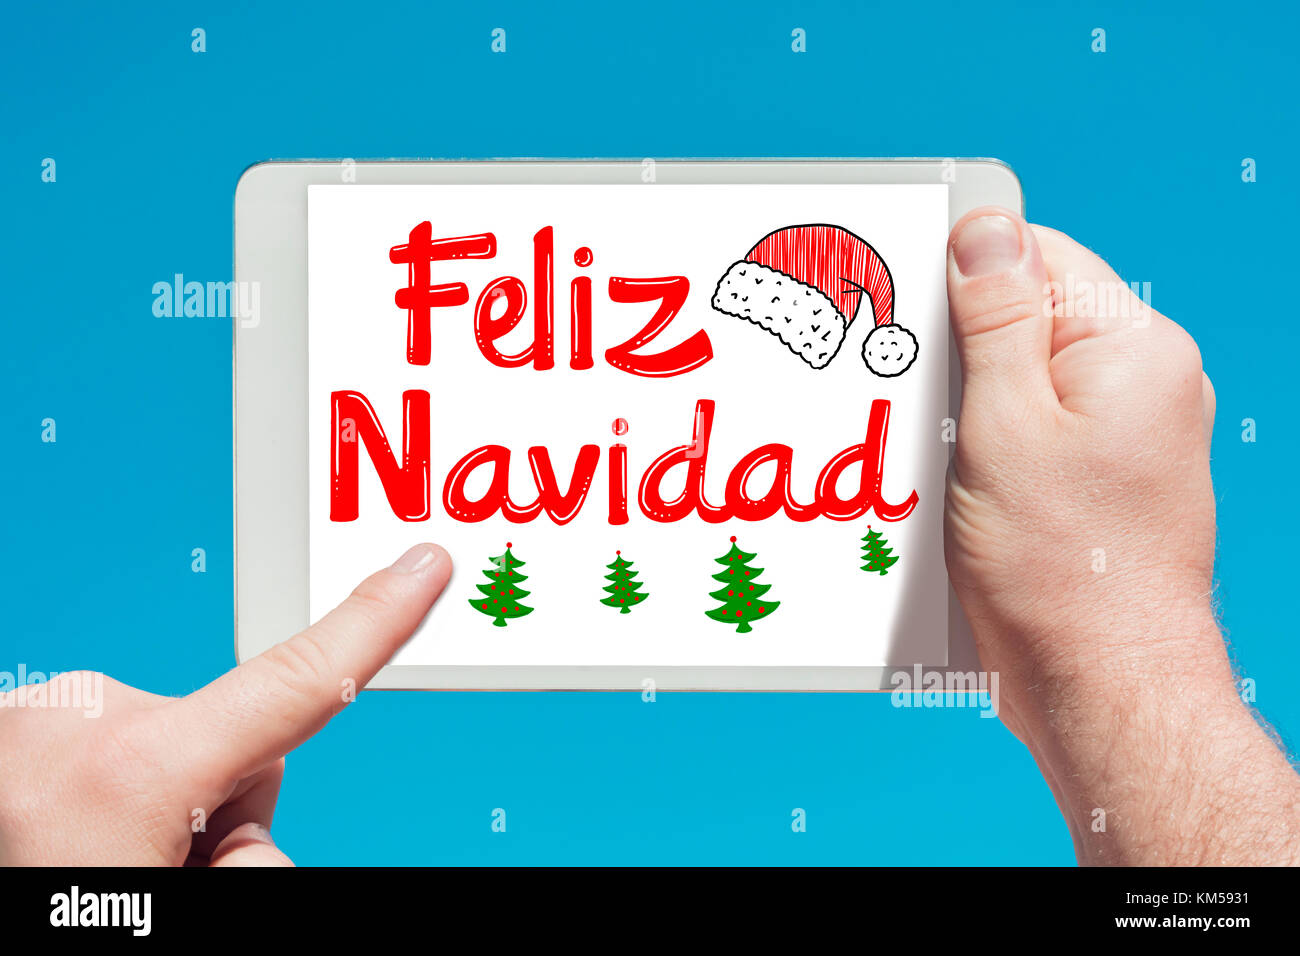 Man holding a tablet device with text in Spanish 'Feliz Navidad (Merry Christmas) and touching the screen with - Stock Image